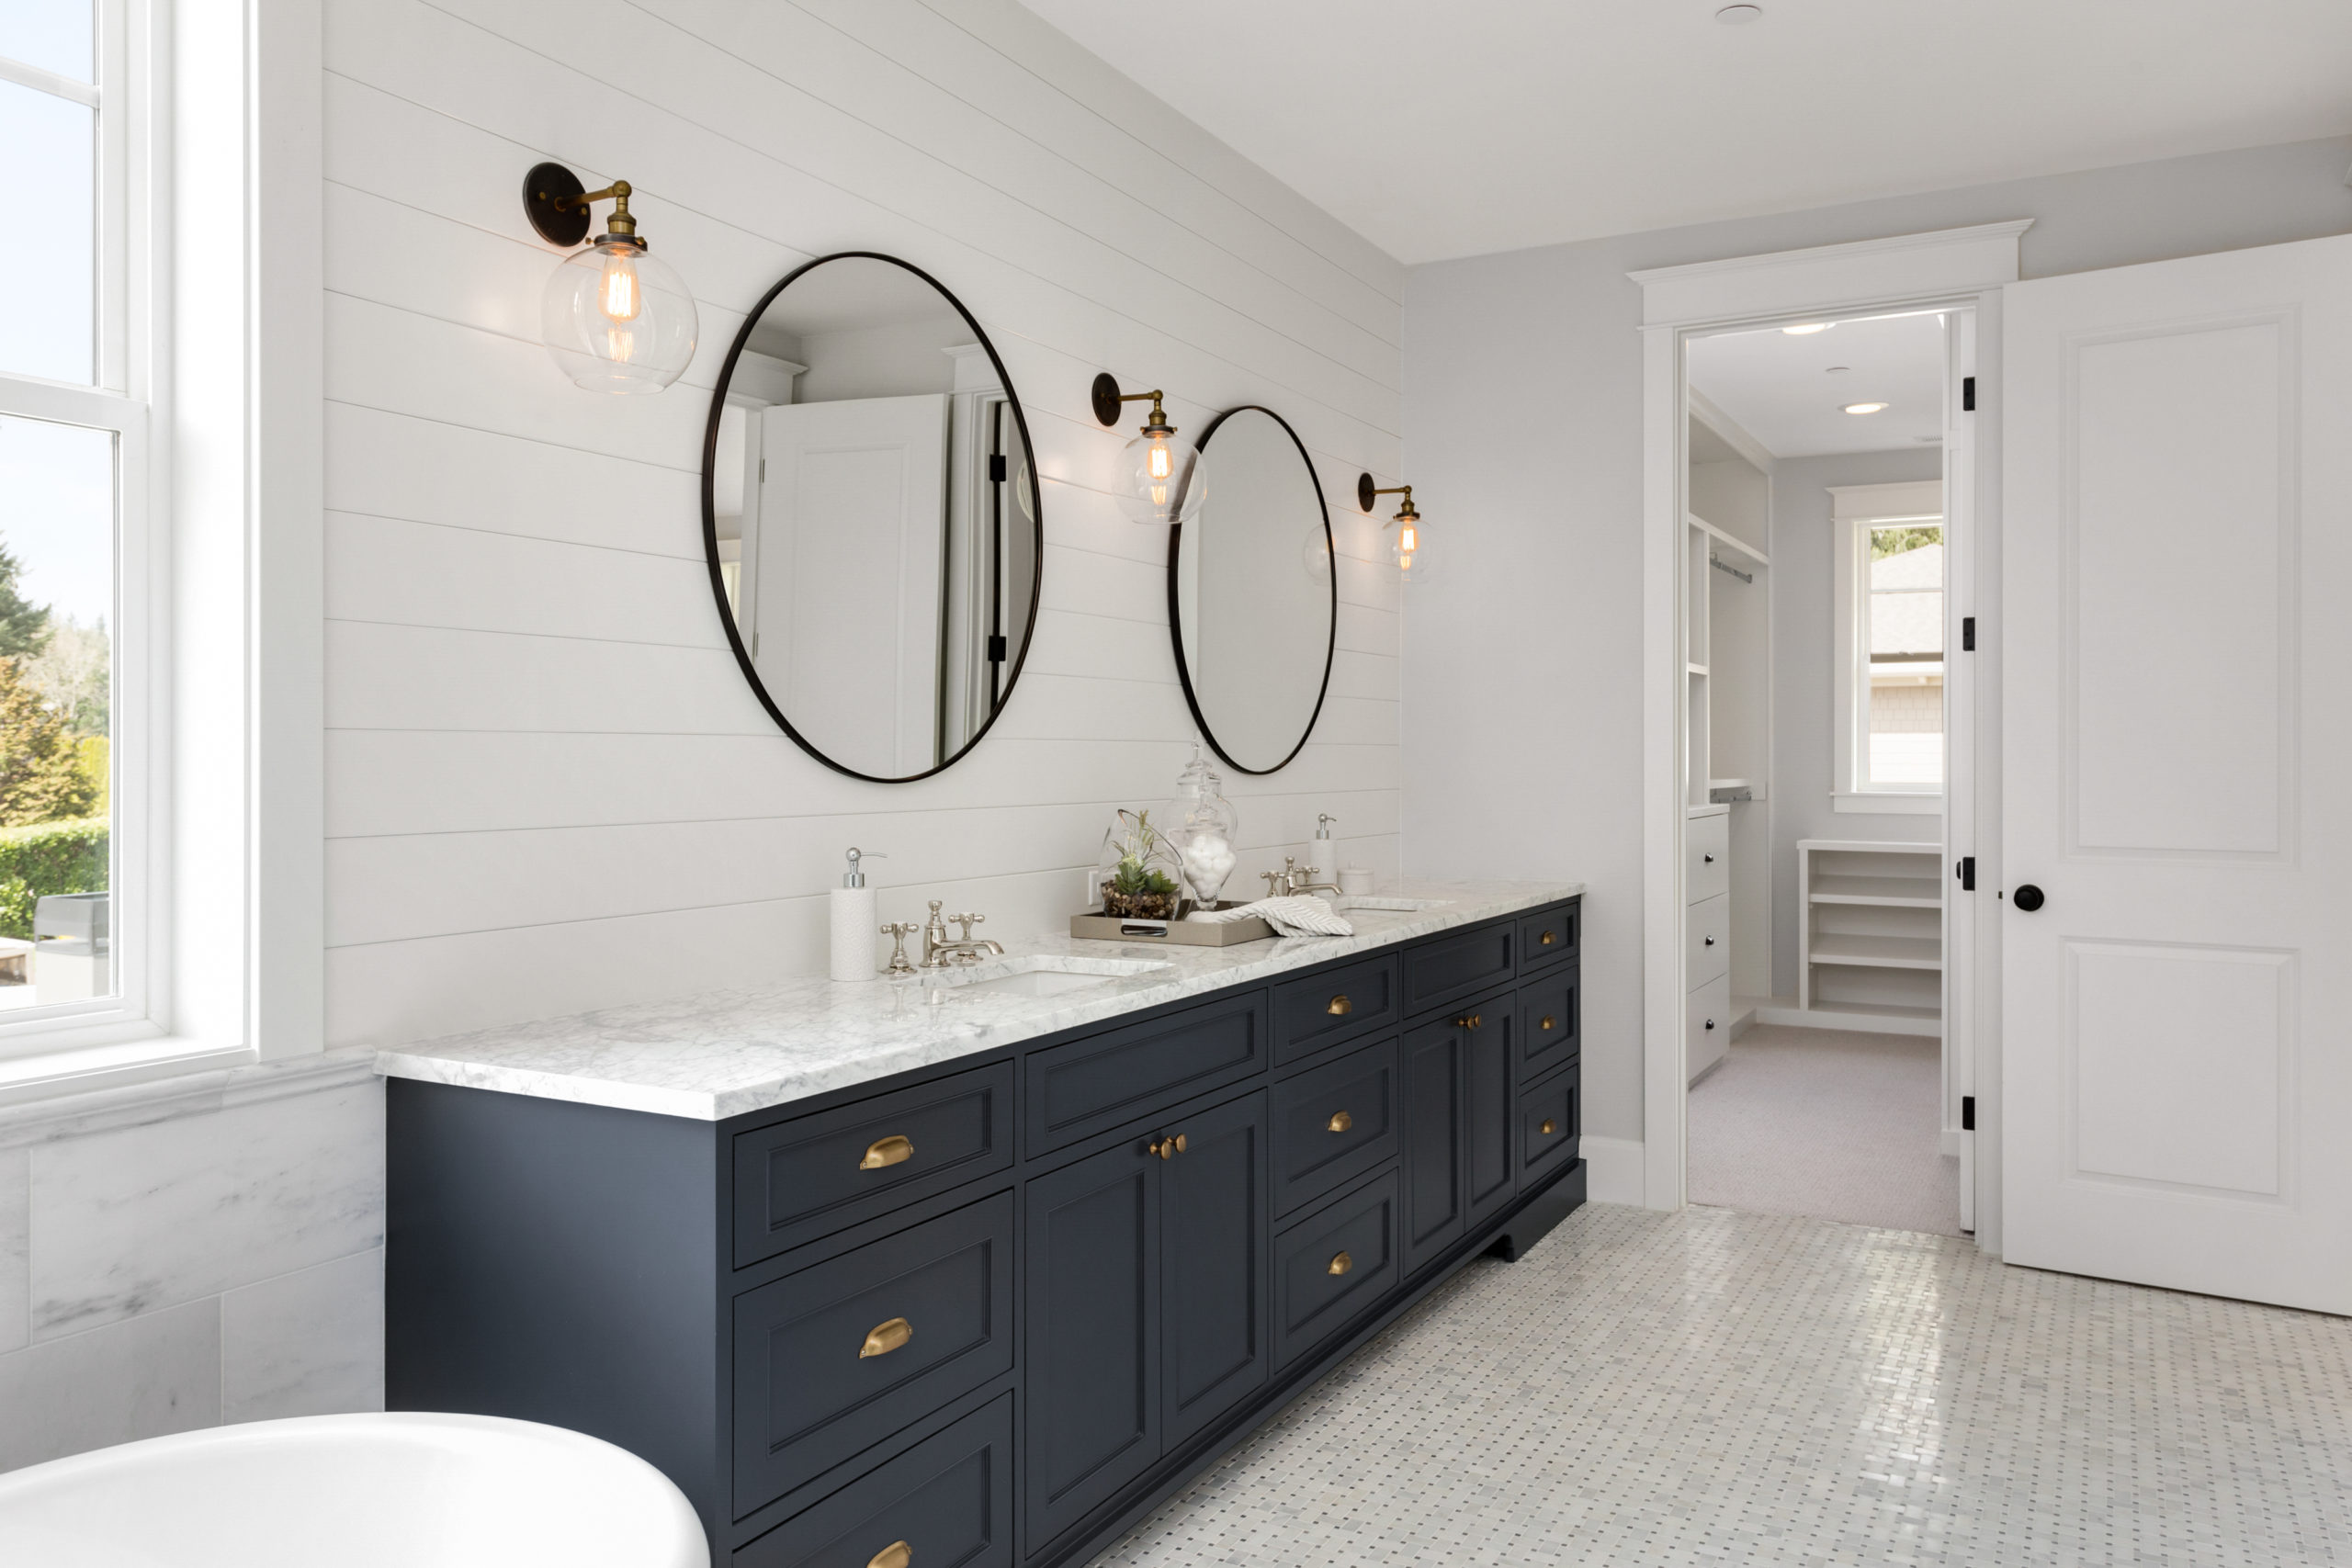 remodel contractors renovate Bathroom in New Luxury Home with Two Sinks and Dark Blue Cabinets. Shows Walk-In Closet